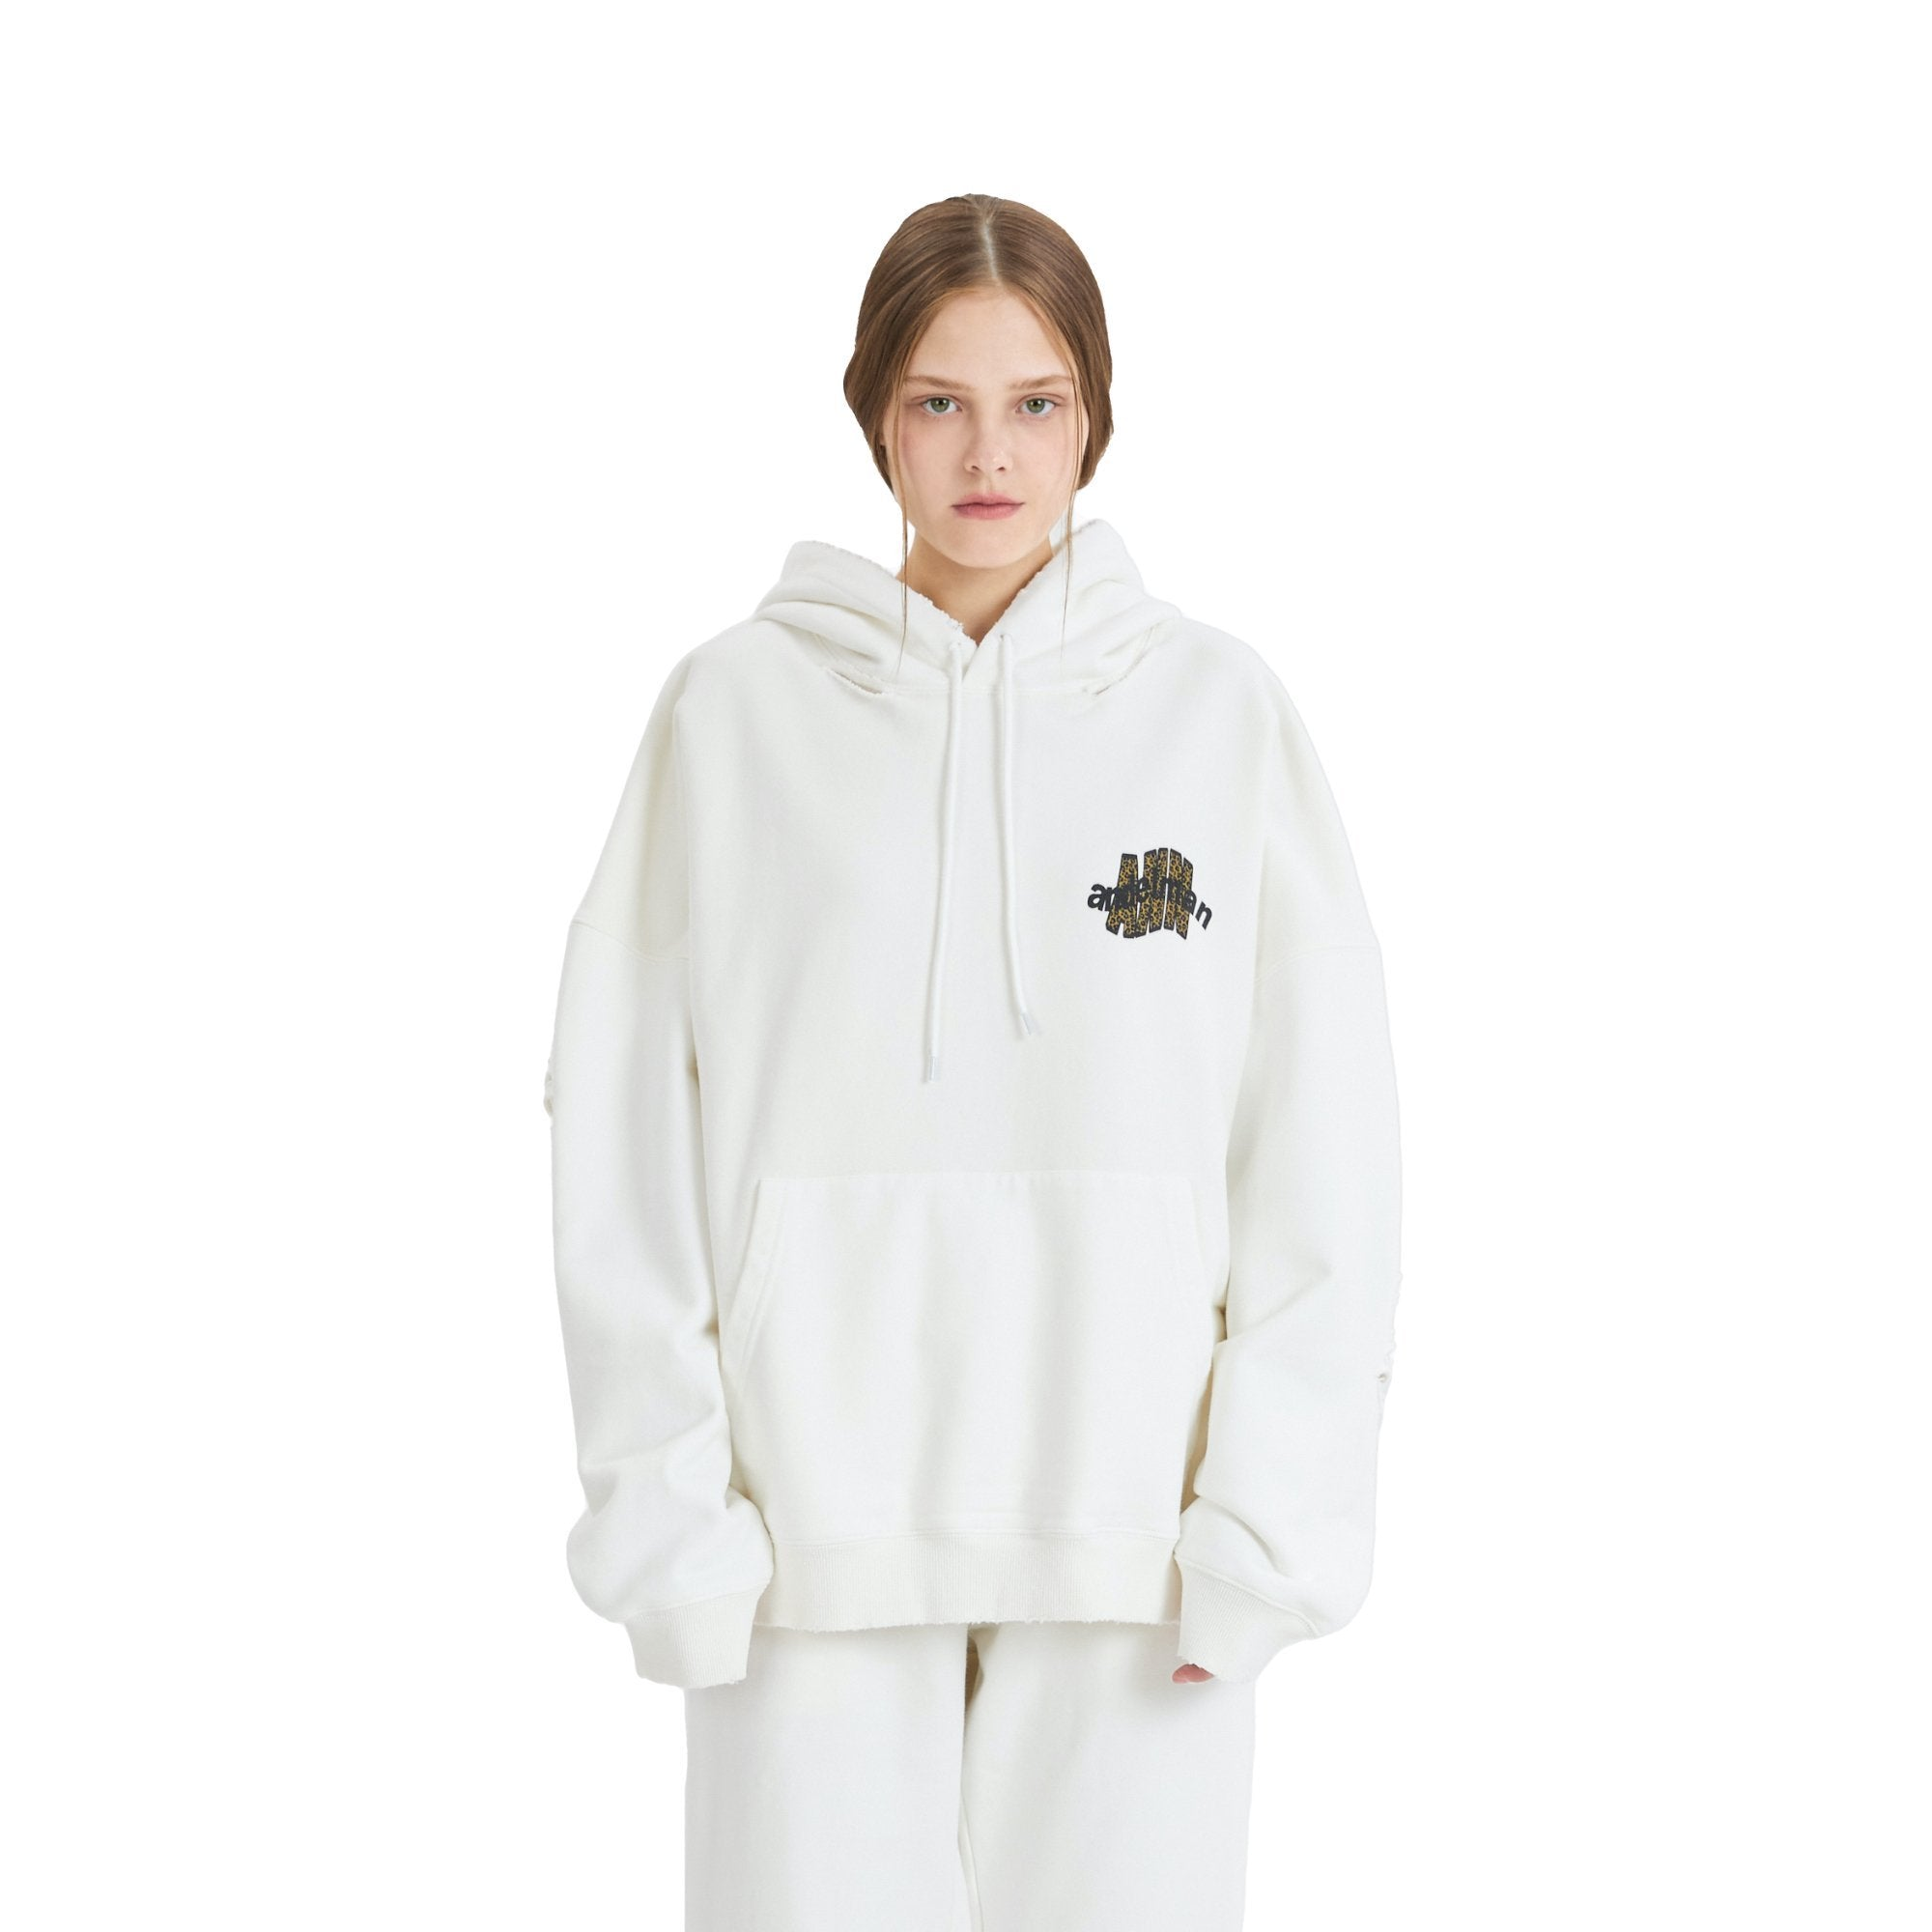 ANN ANDELMAN Leopard Logo Hoodie White | MADA IN CHINA